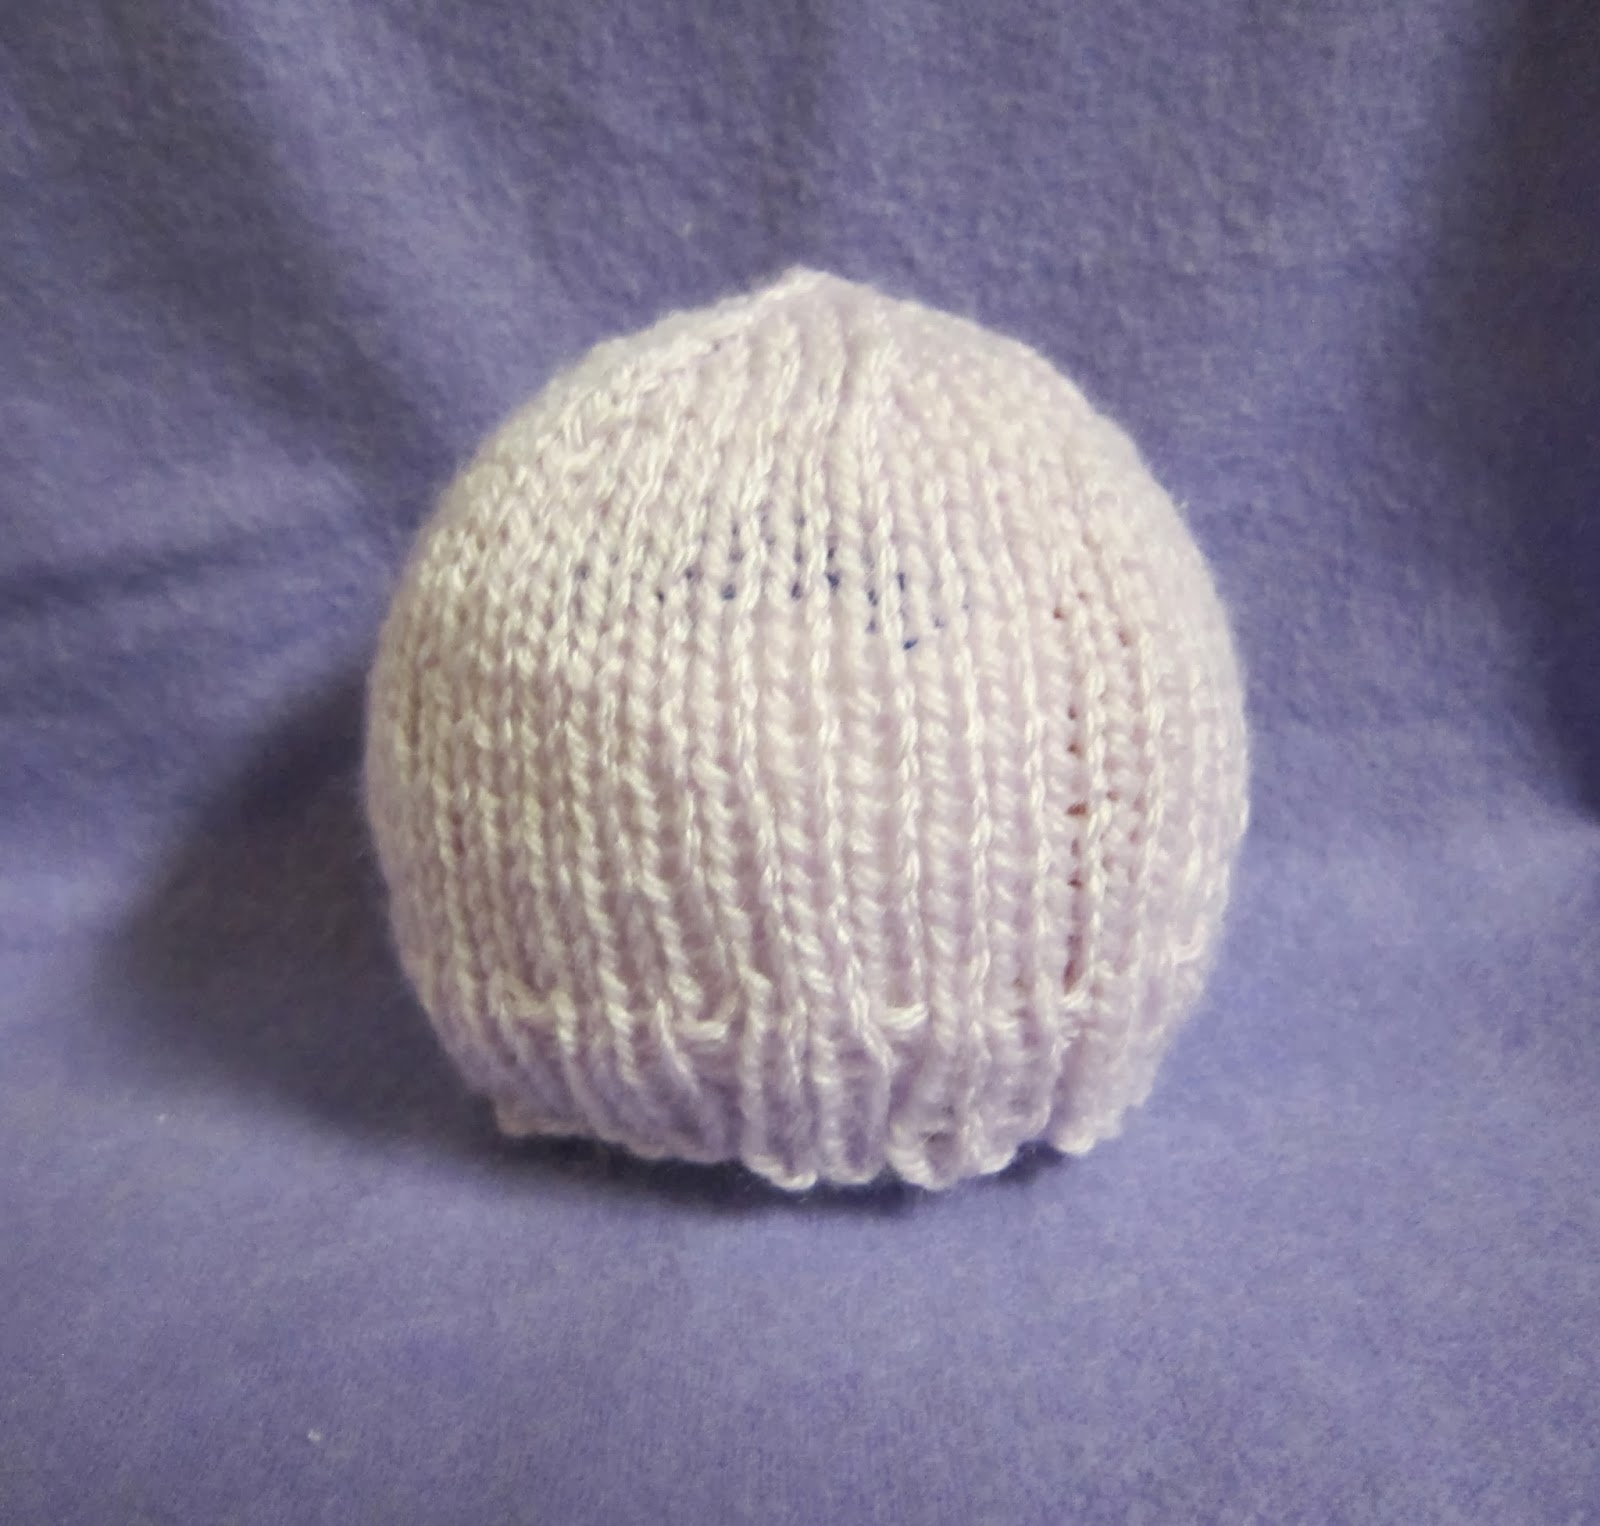 Sea Trail Grandmas: FREE KNIT PREEMIE AND NEWBORN PATTERNS: HATS ...